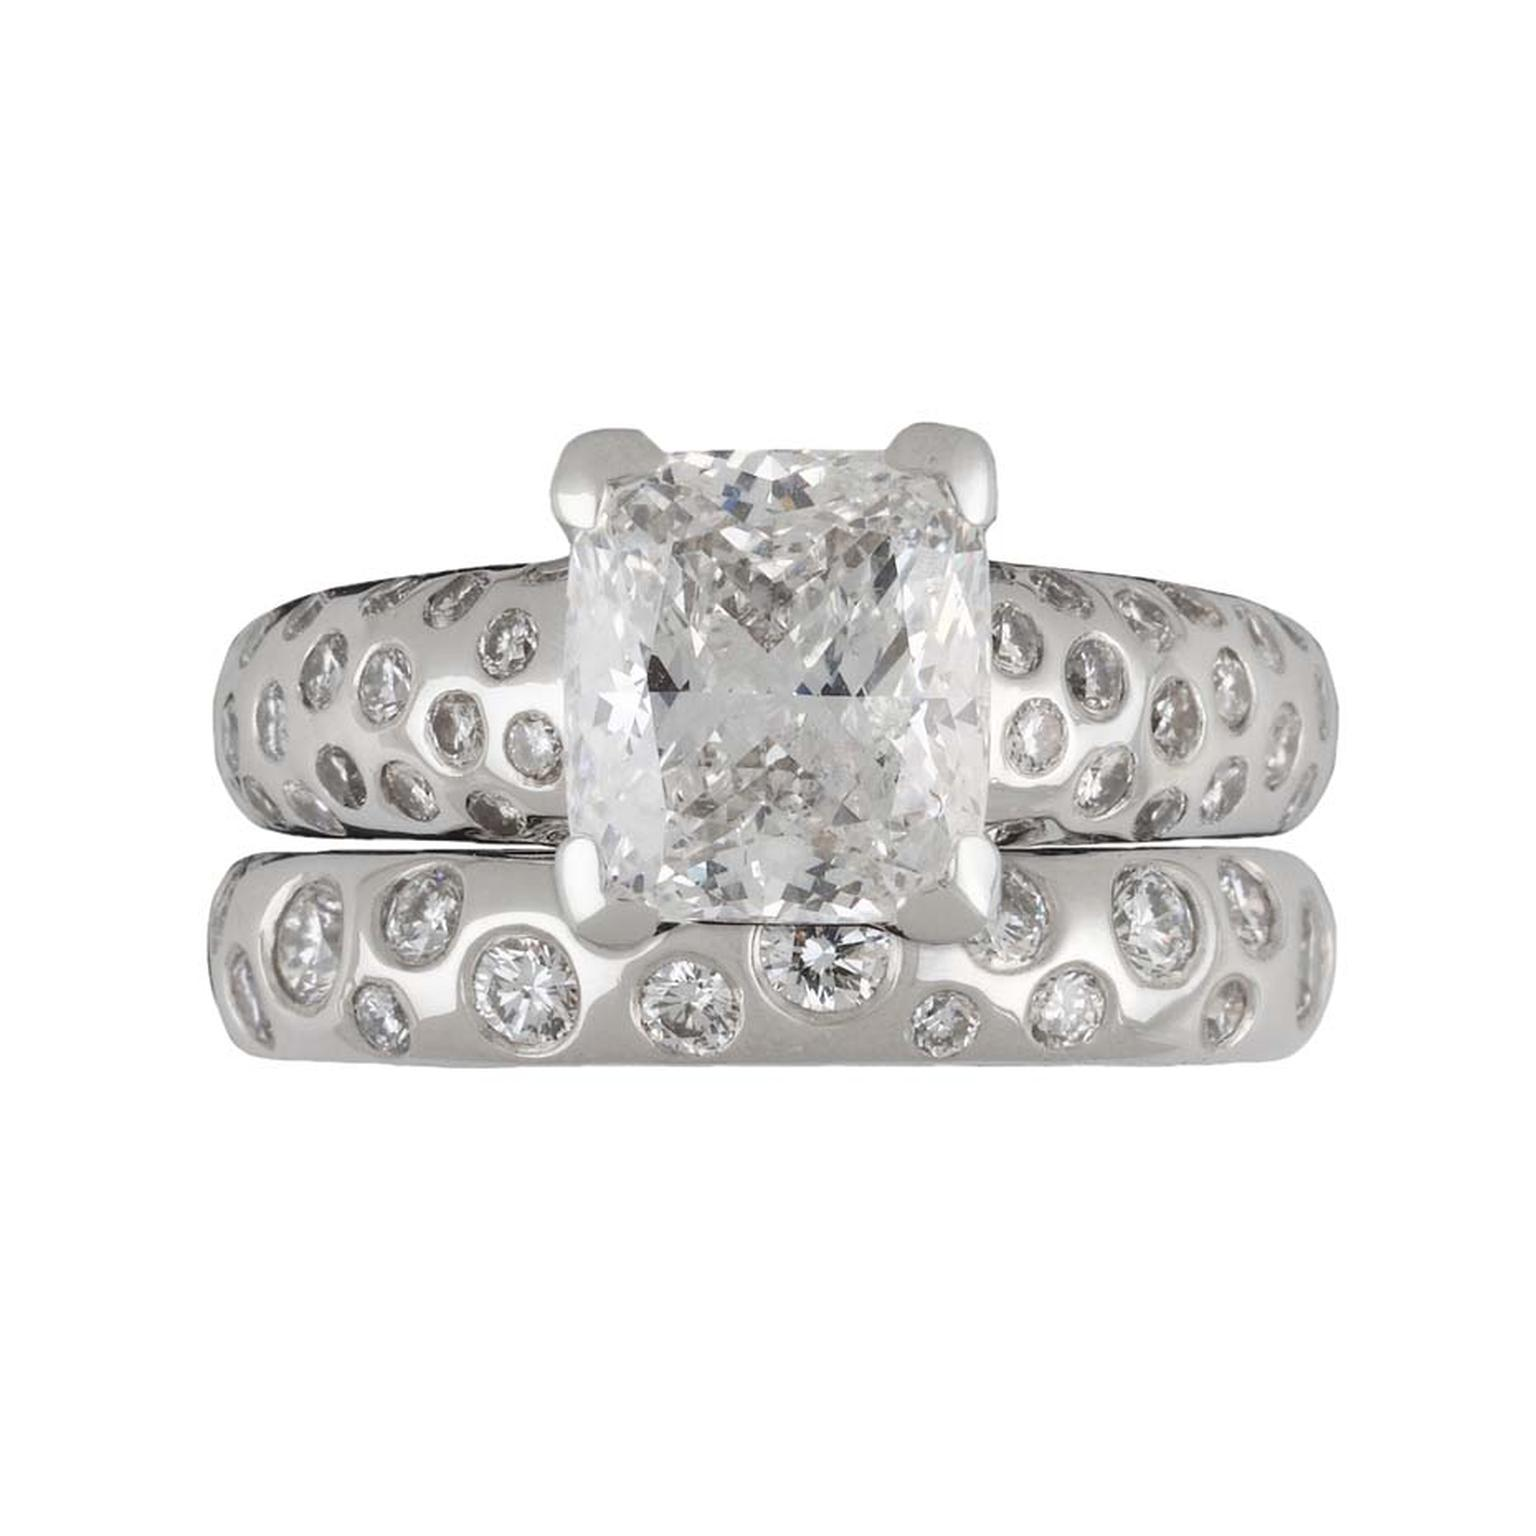 "Dower & Hall ""Fireworks"" engagement ring with a 2.00ct cushion-cut diamond on a platinum band, set with tiny diamonds."